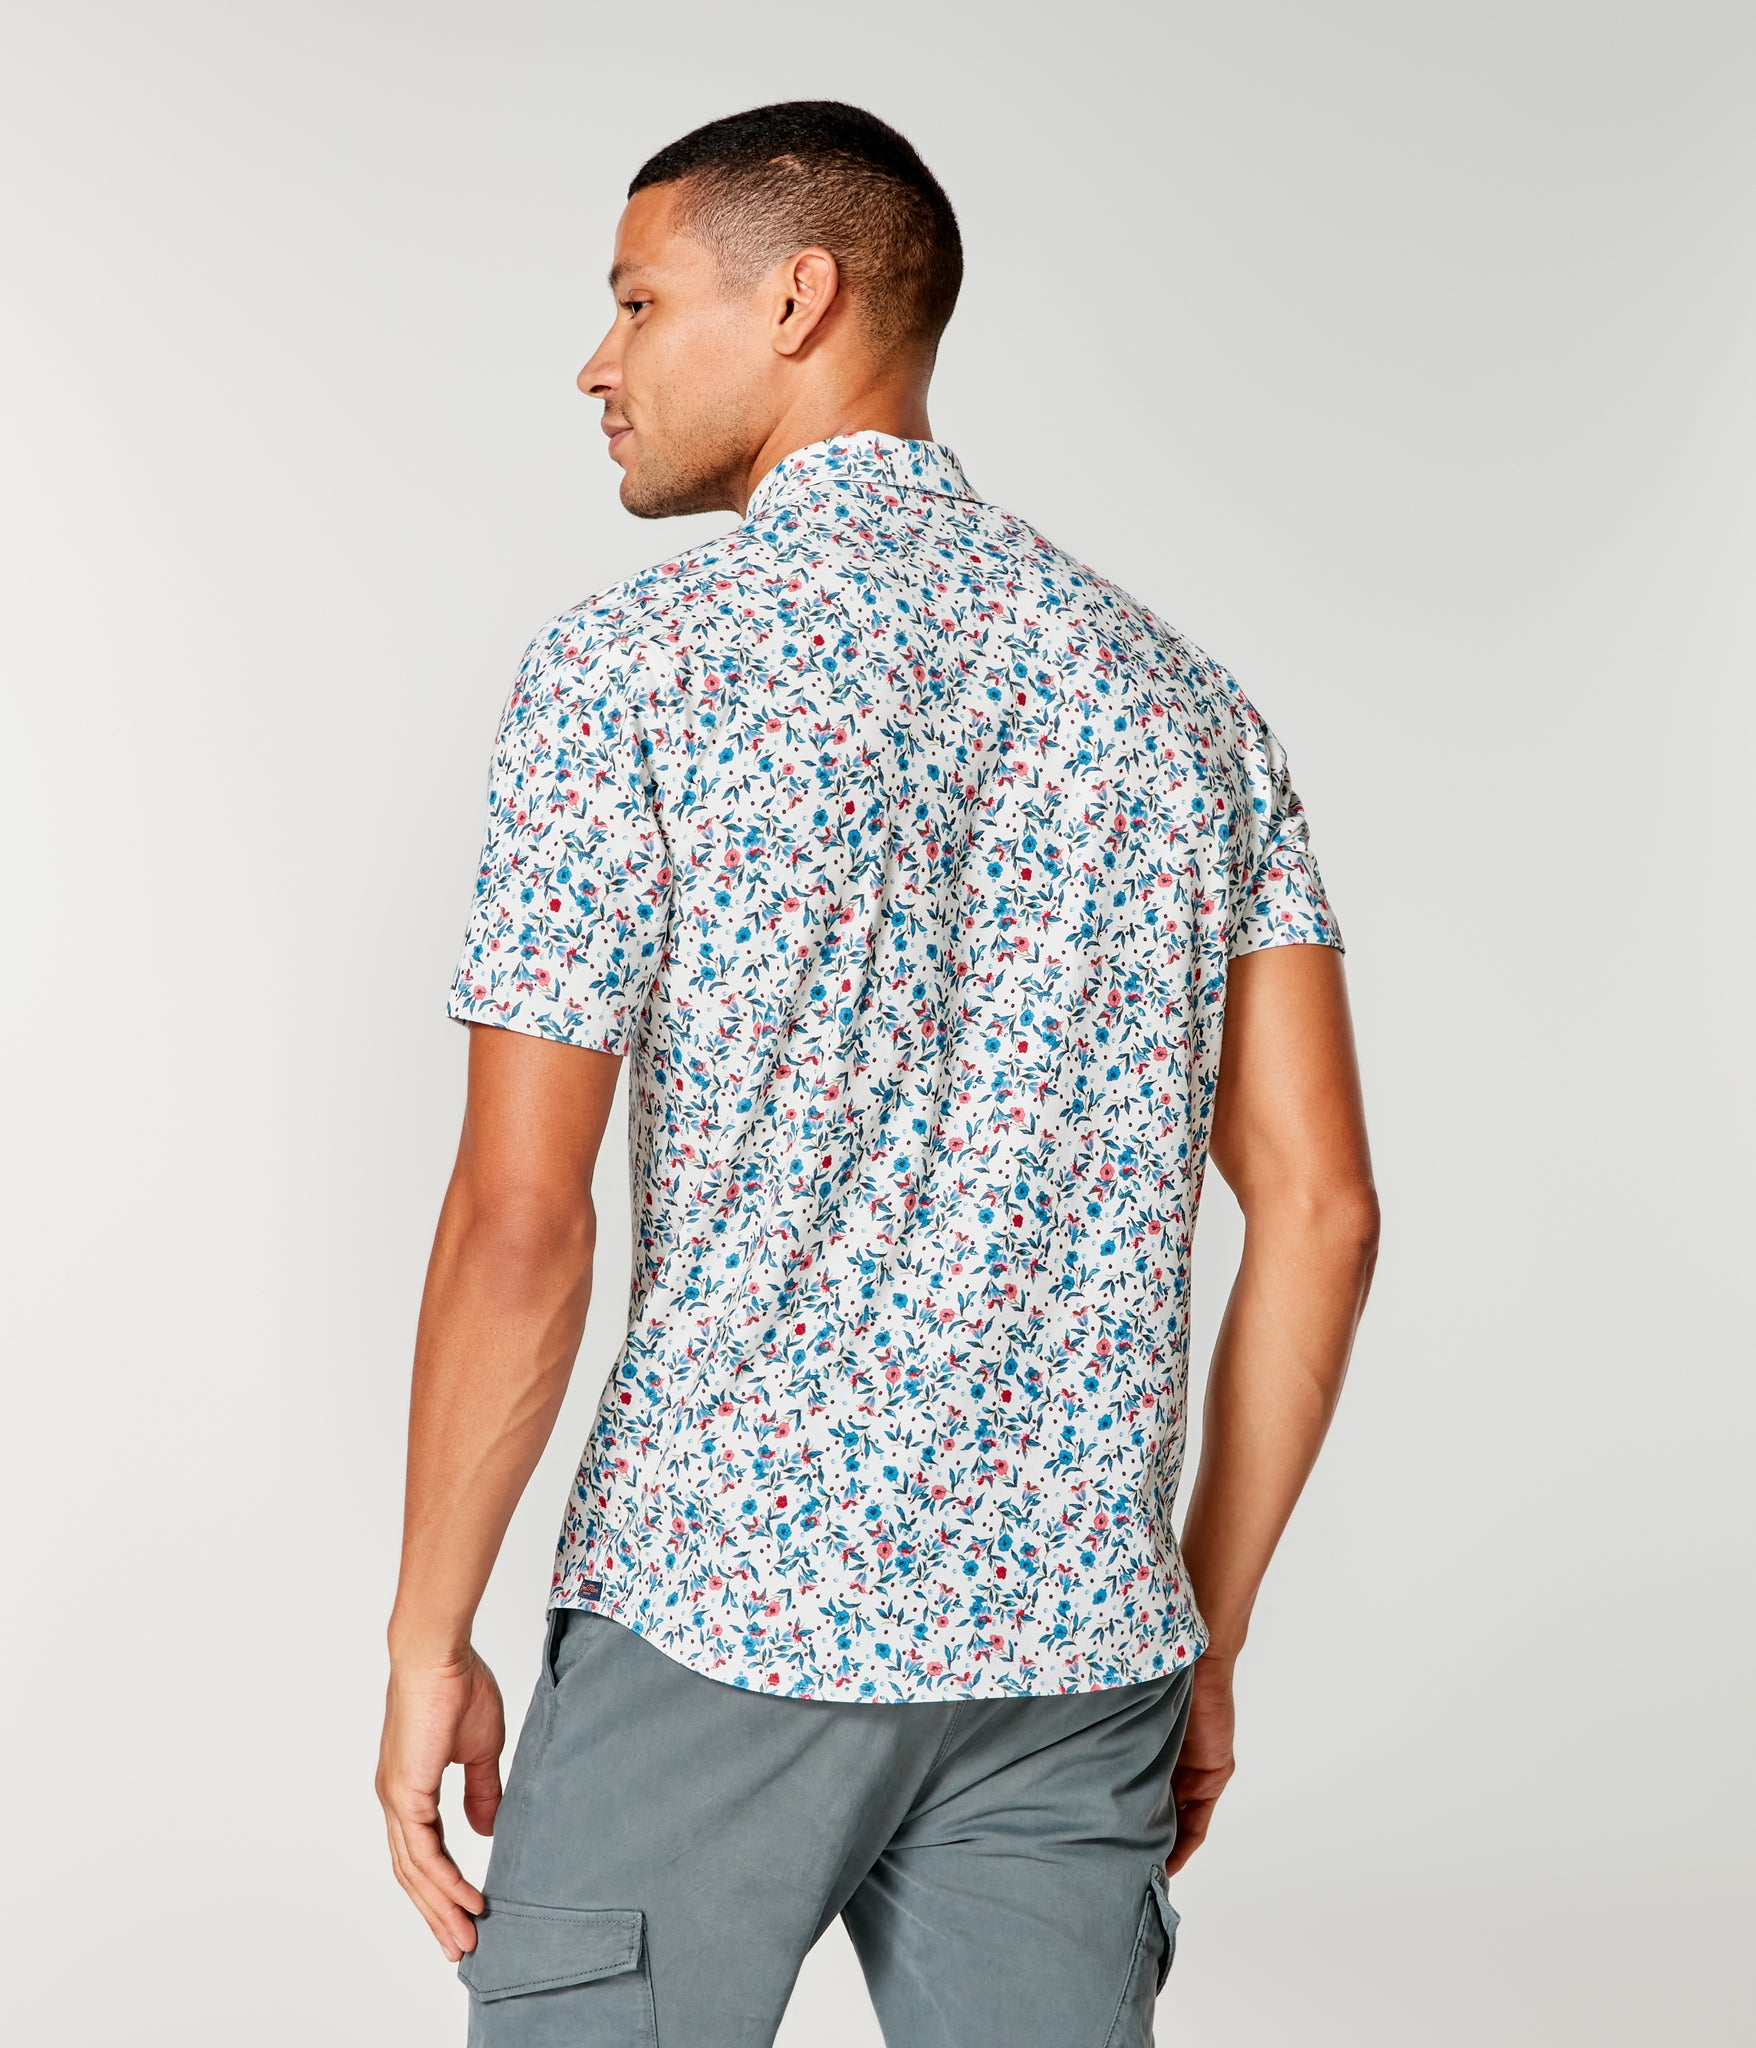 Flex Pro Jersey Printed Soft Shirt - White Berry Harvest